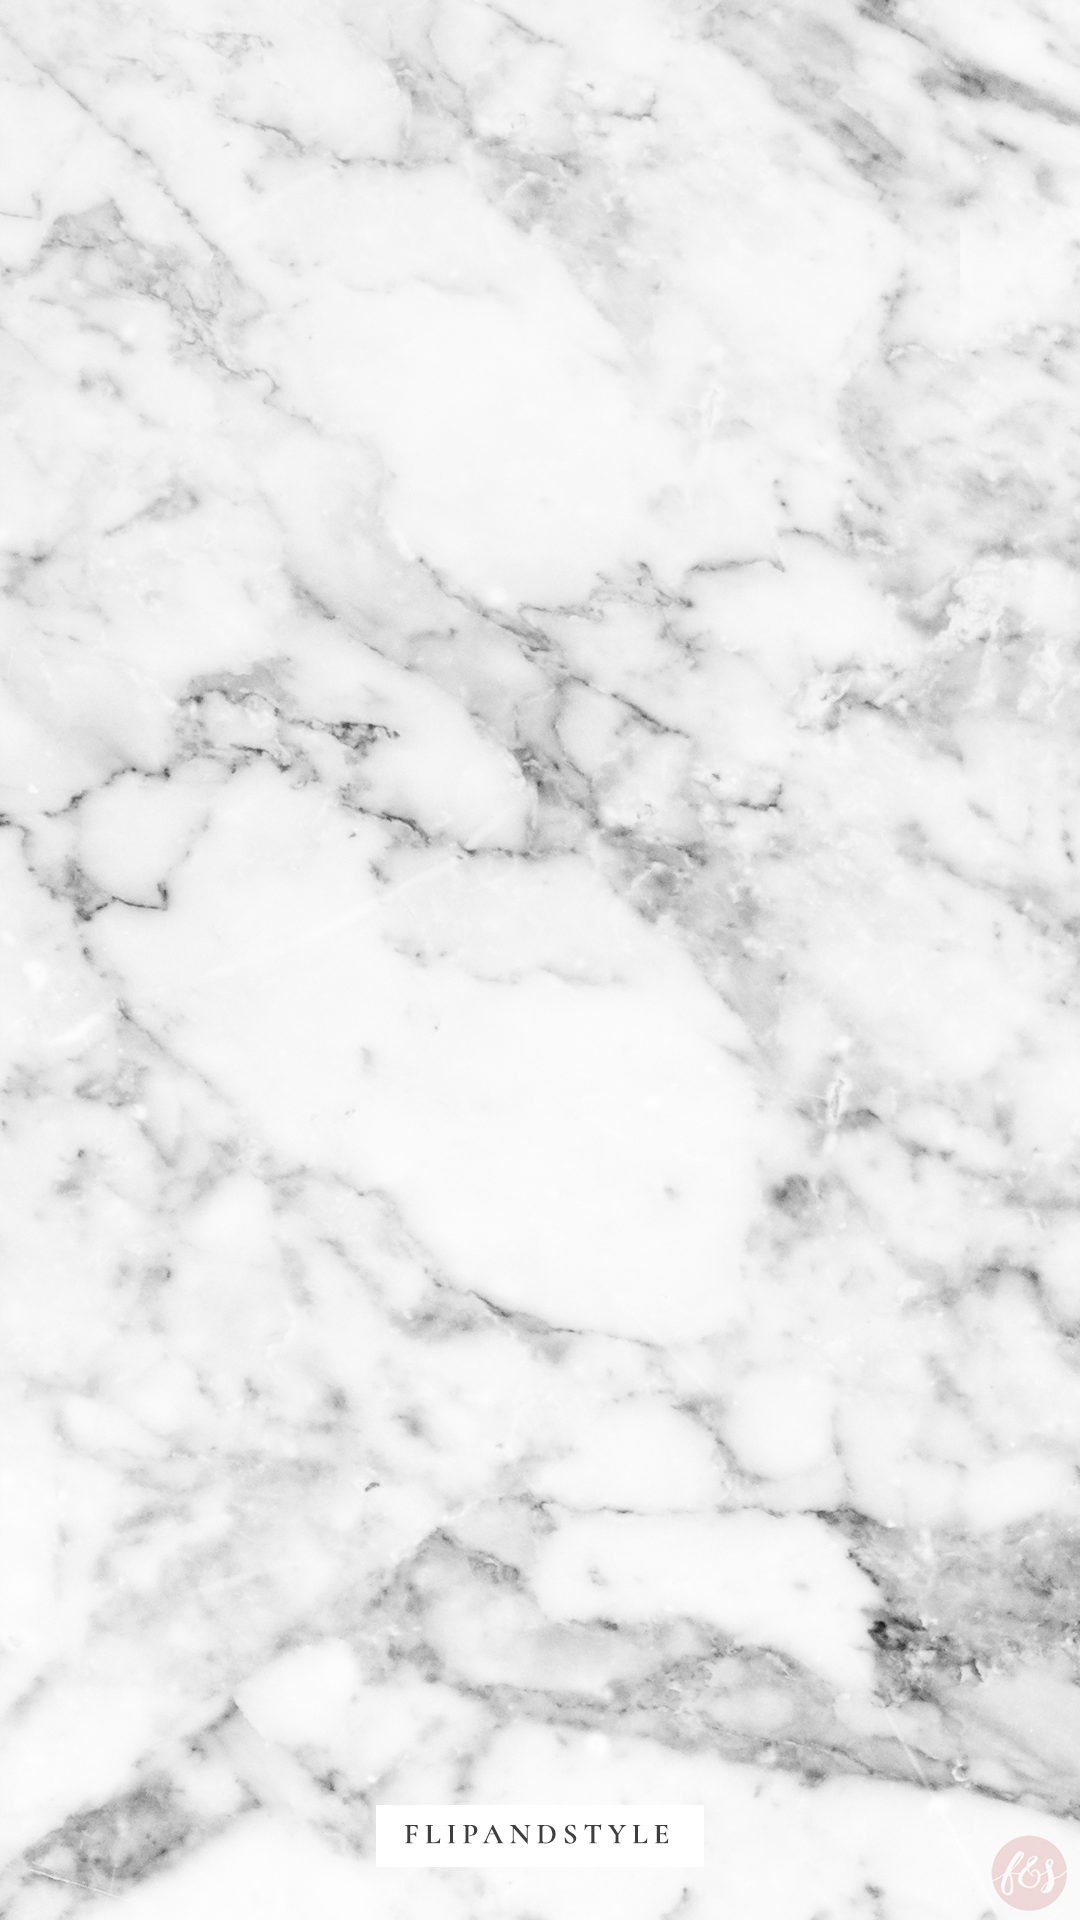 iPhone Wallpapers For Personal Use   Flip And Style Marble 1080x1920